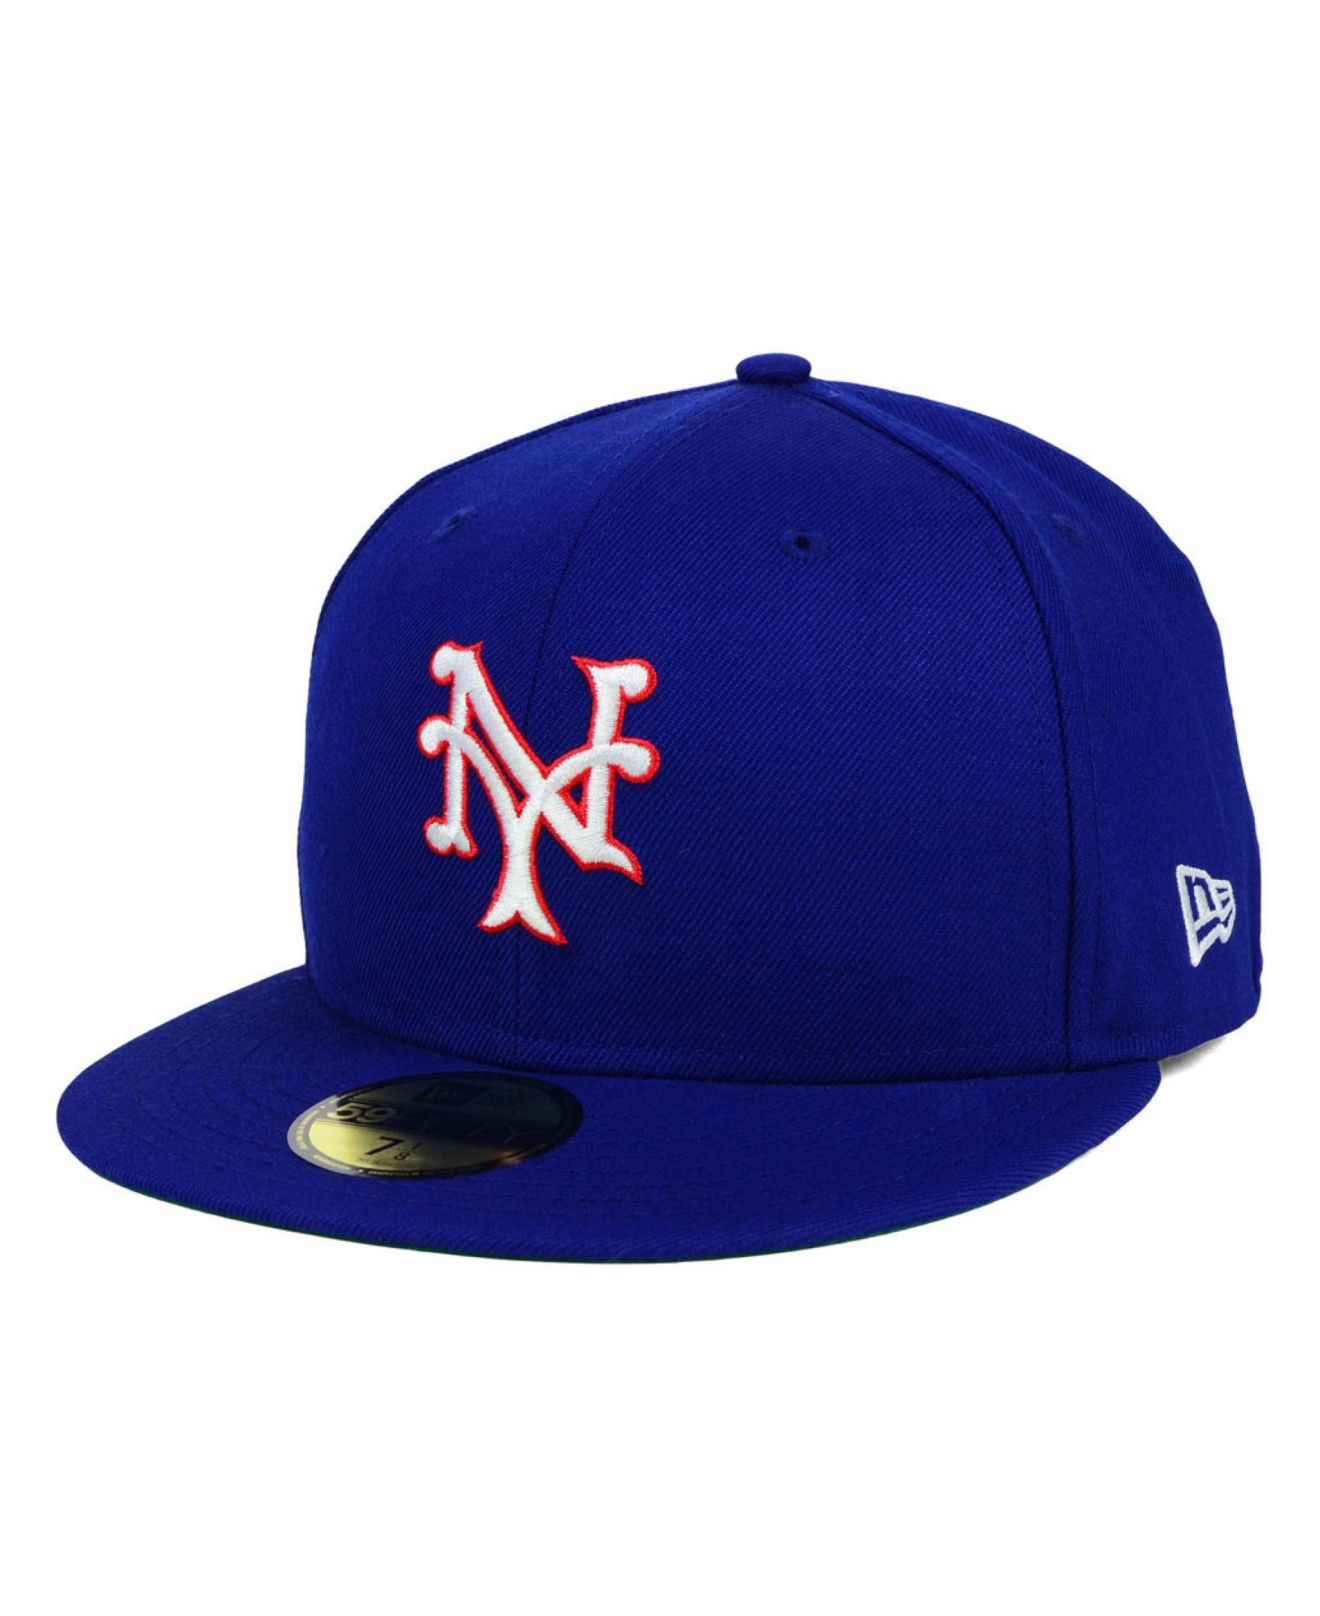 ktz new york giants mlb cooperstown 59fifty cap in blue. Black Bedroom Furniture Sets. Home Design Ideas